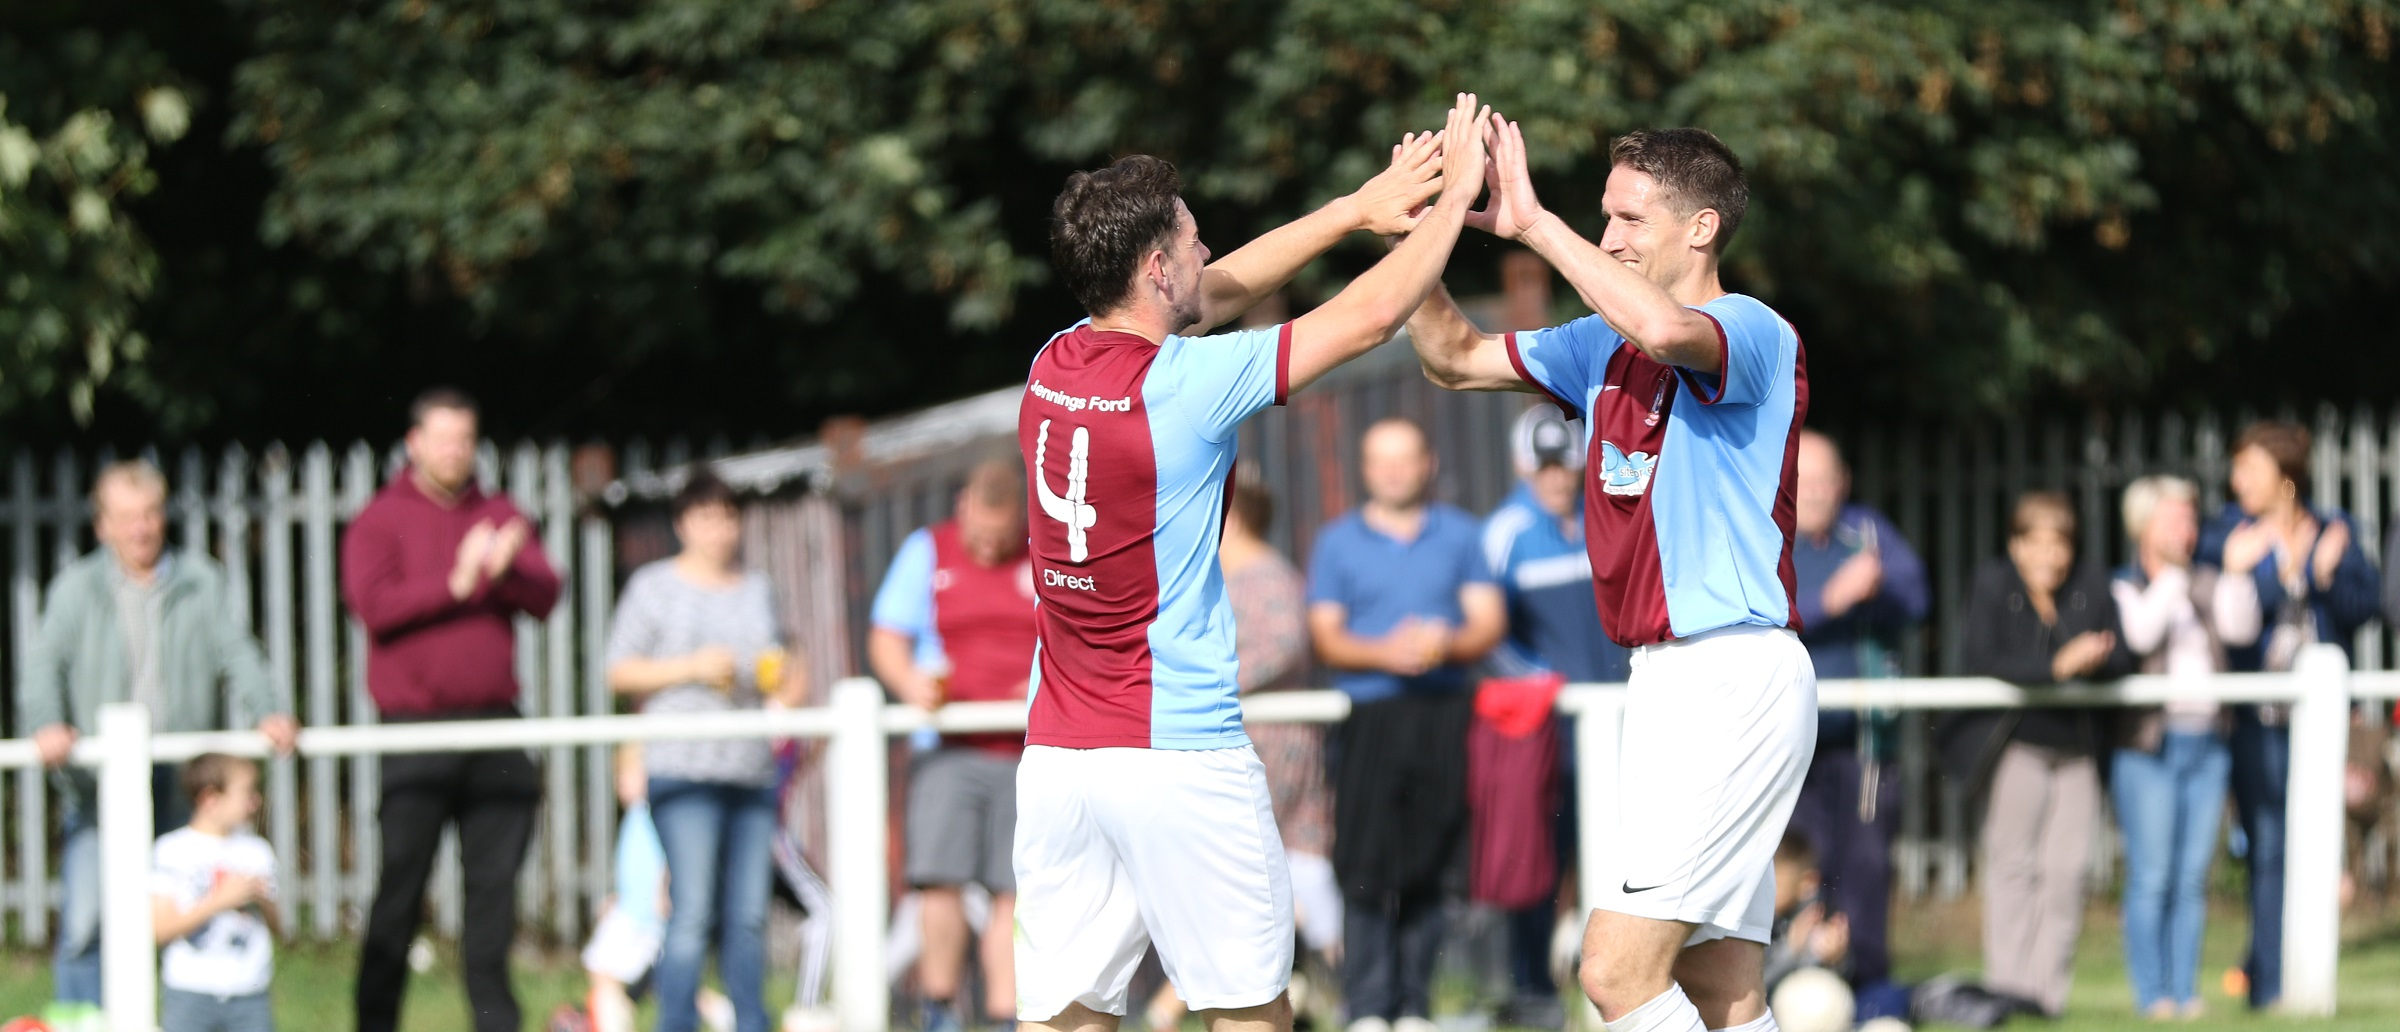 South Shields 6-1 Ryhope CW: Six of the best from Mariners